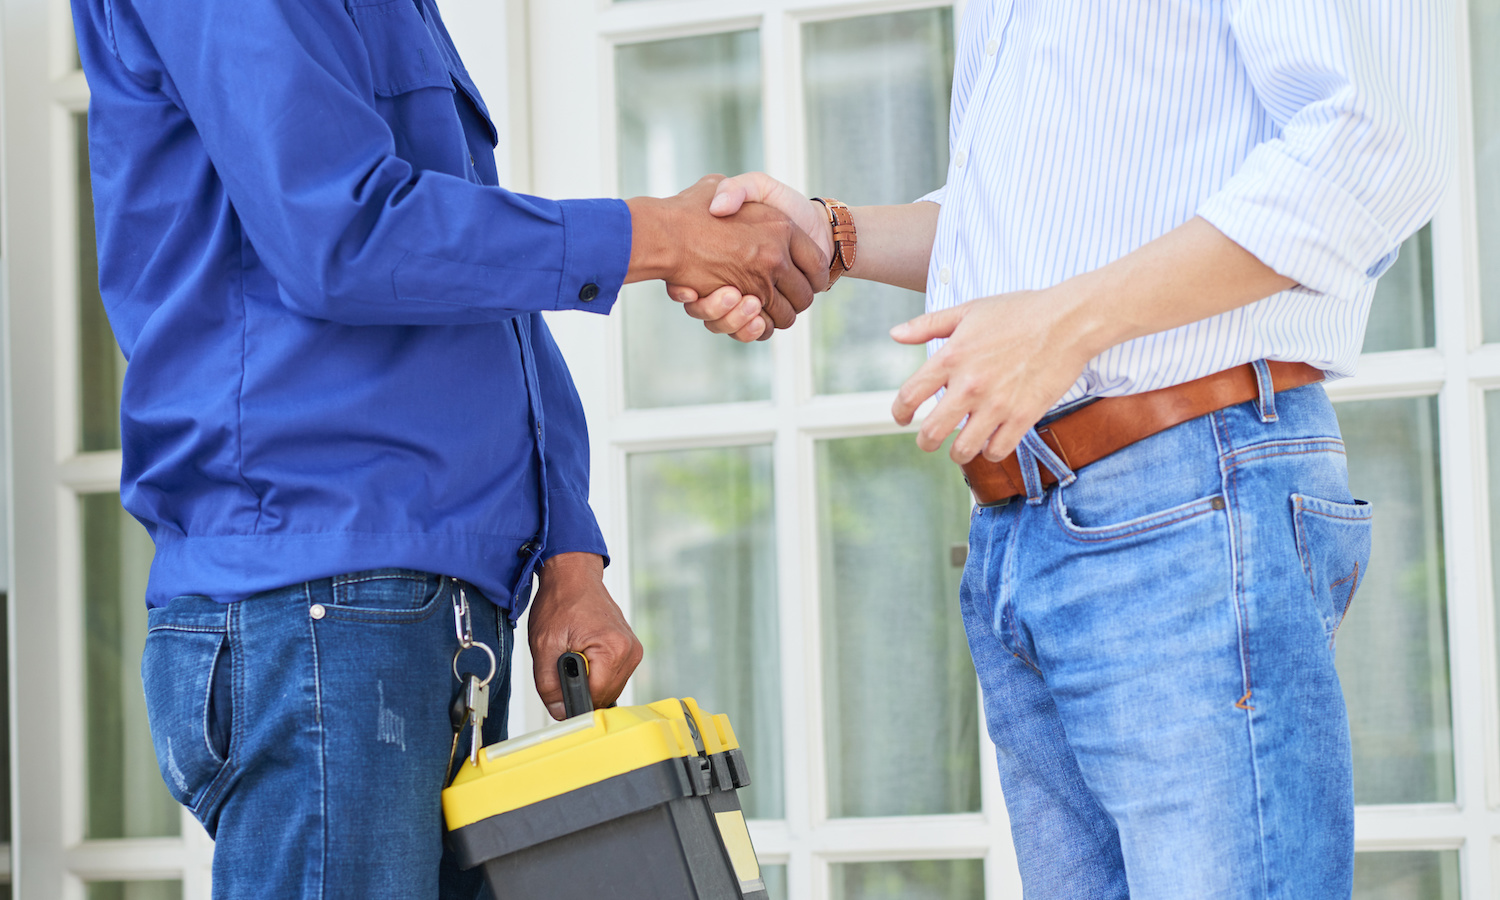 field service tech and customer shaking hands after a job is completed